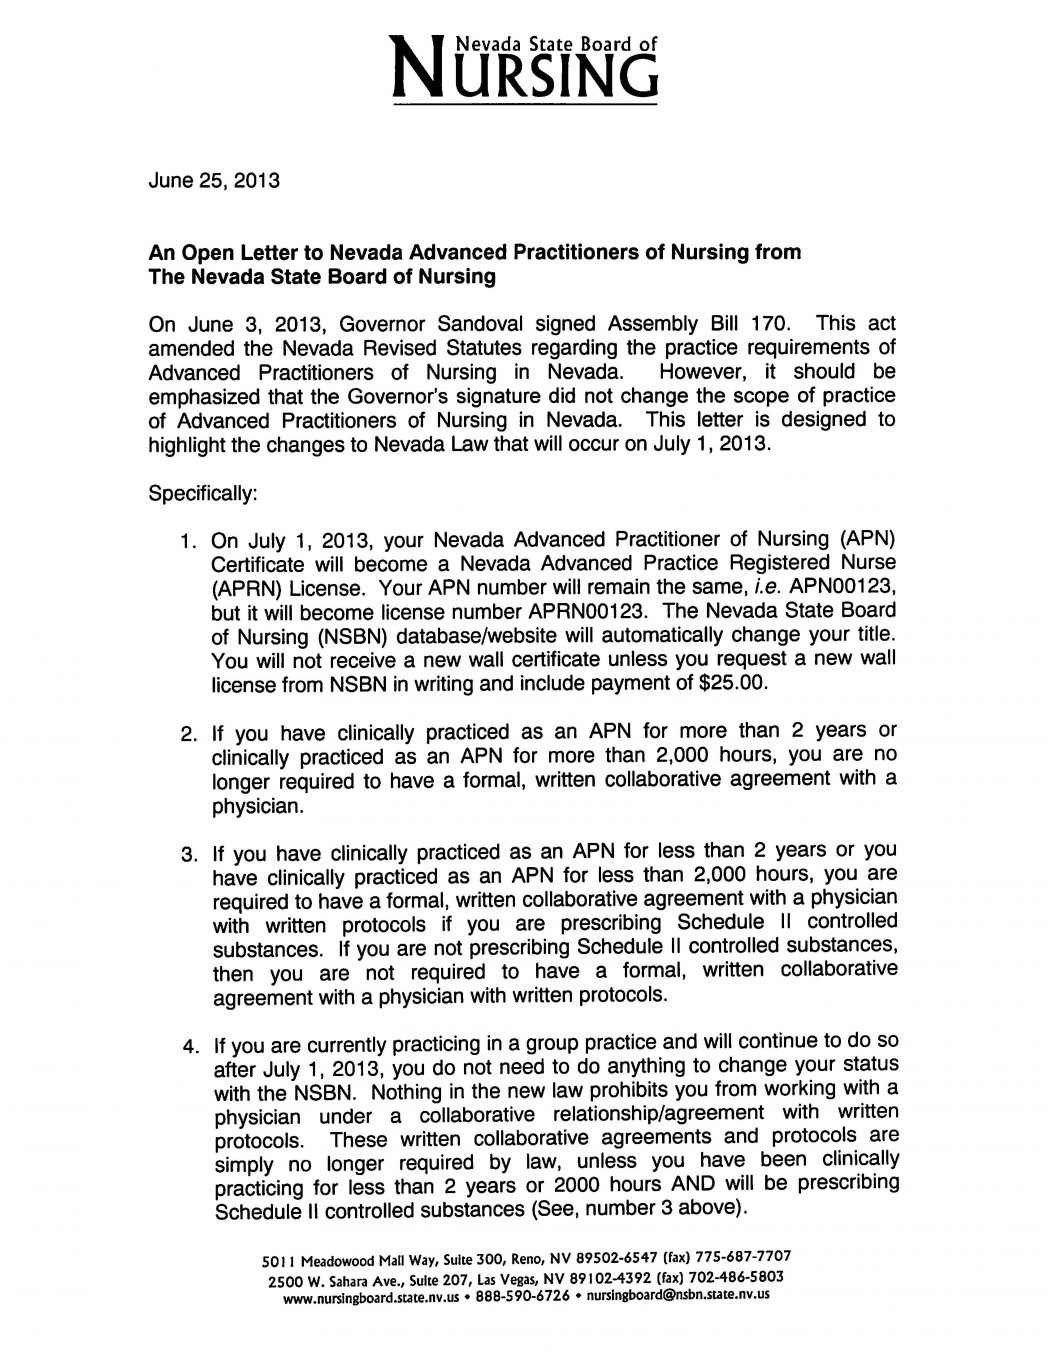 012 Nurse Practitioner Essay I Want To Why Do Writers Write Aprnletter P Should Struggle Essays What My About We Have Cant Good So Slowly 1048x1367 Stunning Be A Admission Sample Pdf Full